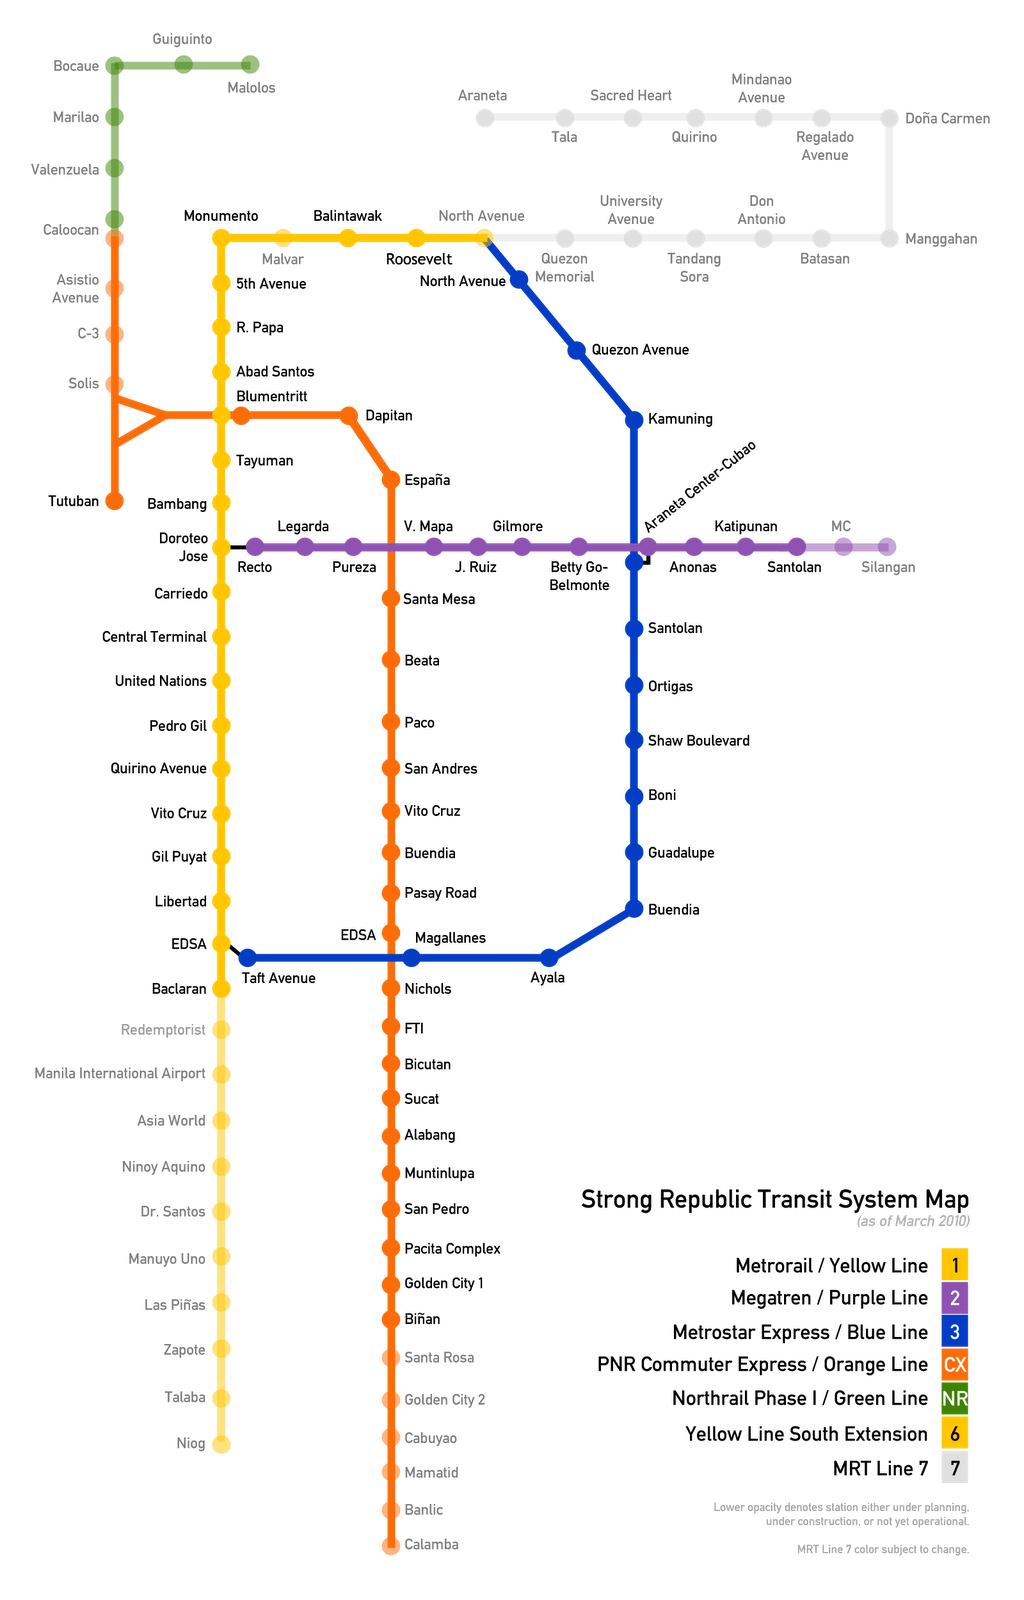 Mrt Subway Map.The Viewing Deck The Viewing Deck Collections Local And